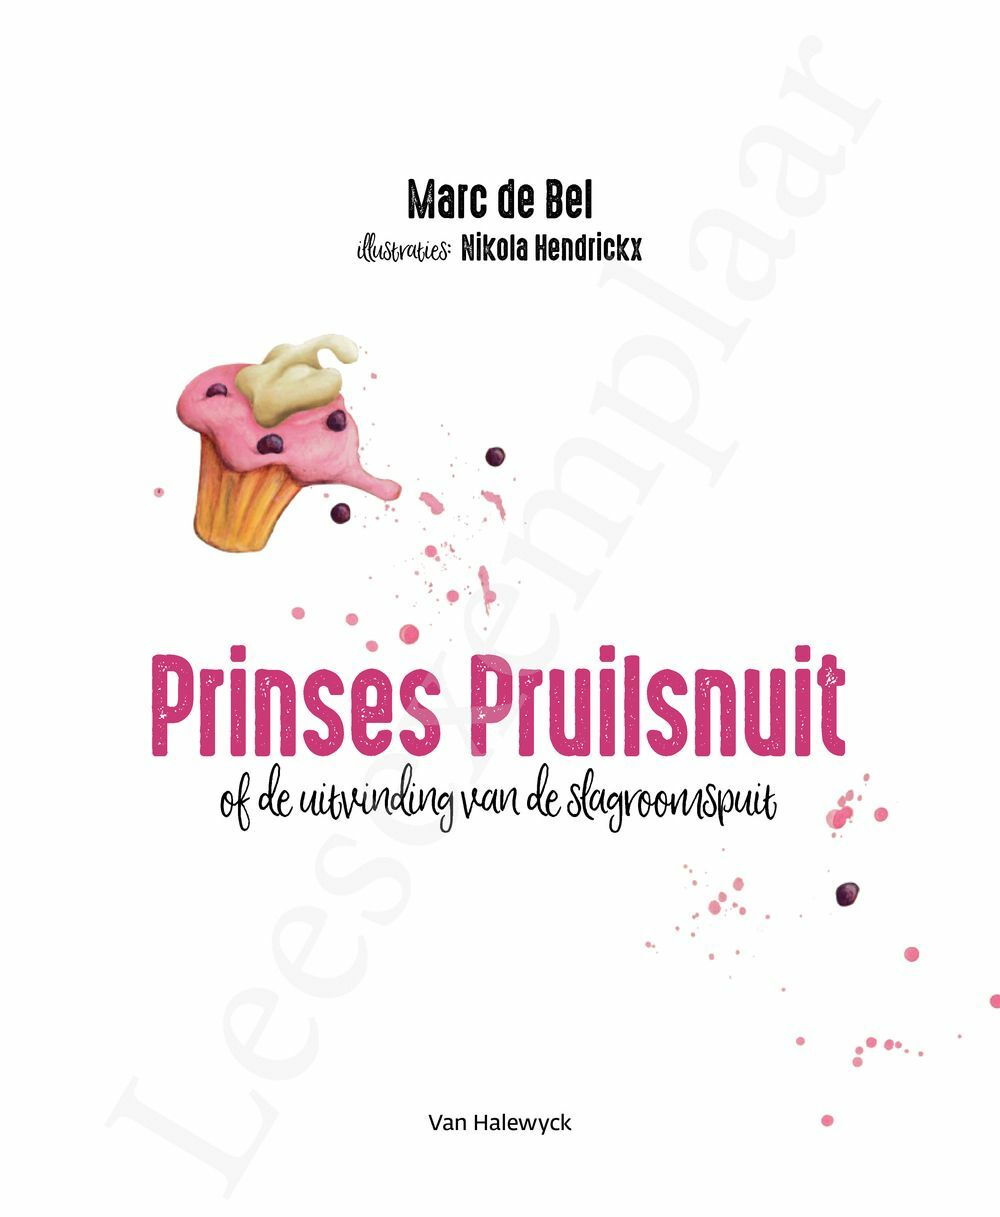 Preview: Prinses Pruilsnuit (of de uitvinding van de slagroomspuit)